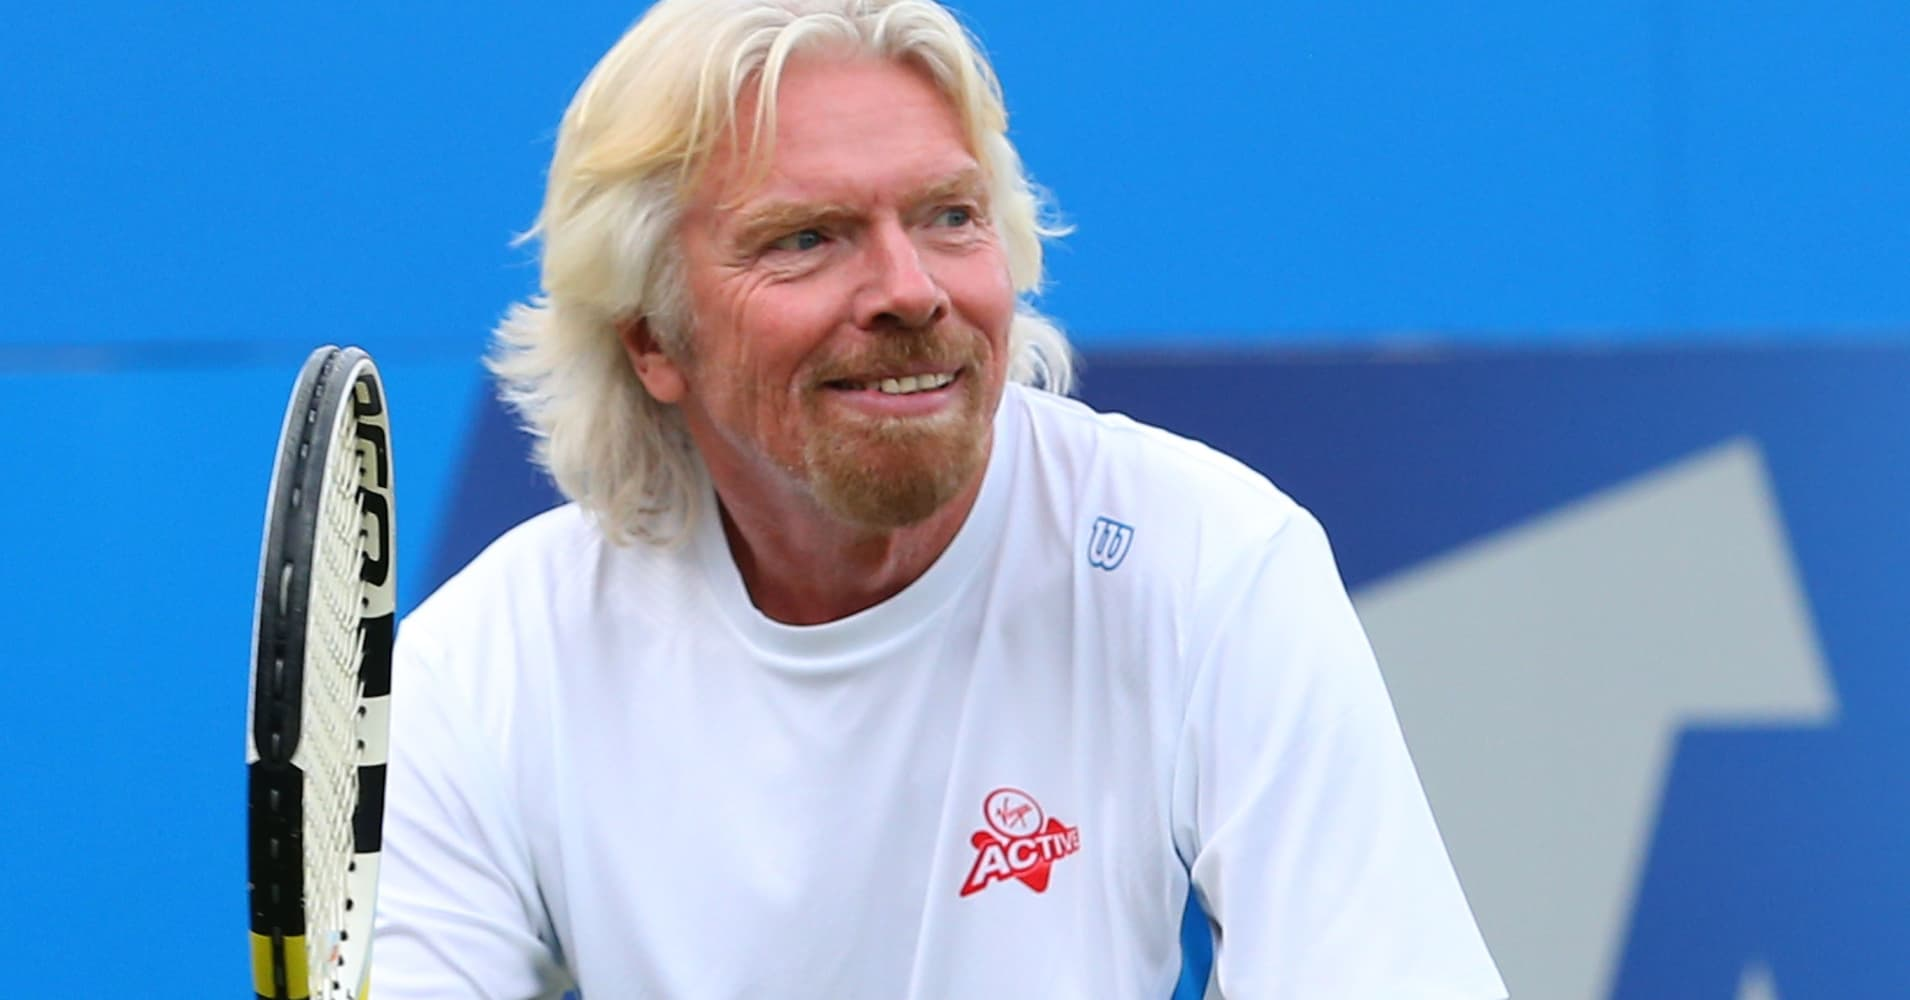 Billionaire Richard Branson says this daily routine sets him up to 'achieve anything'